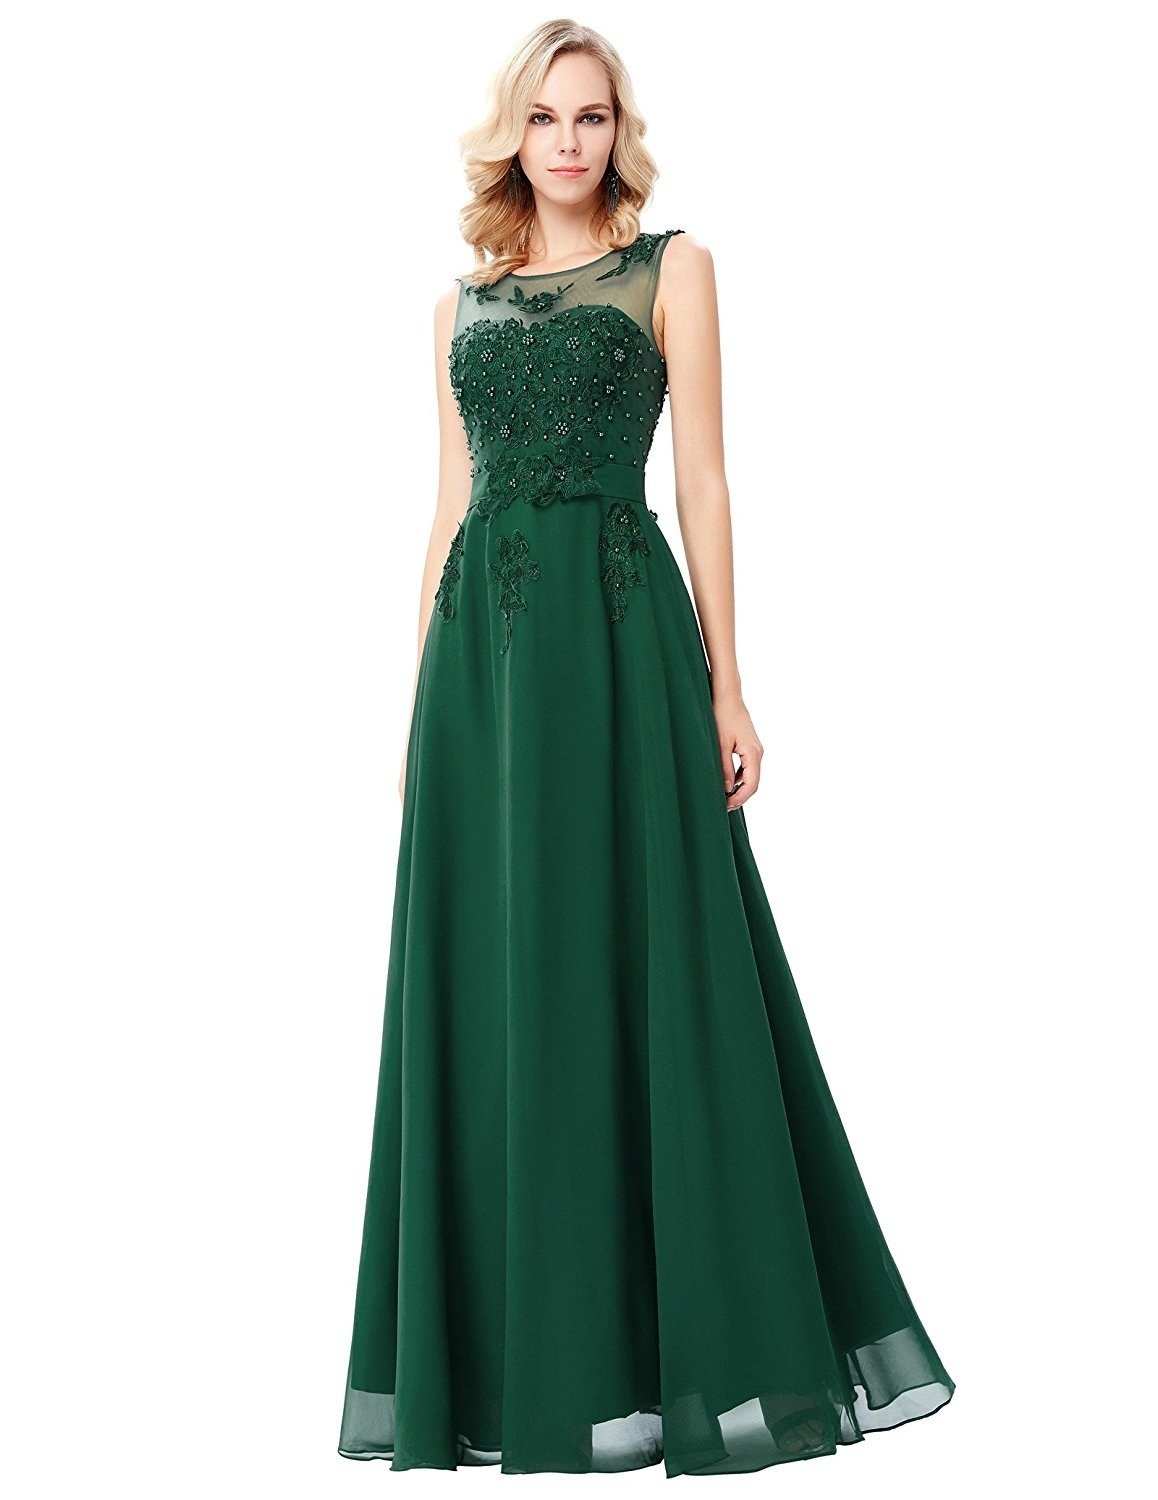 95355d0a82 A chiffon sweetheart gown with delicate beading so you look like a million  bucks without spending your future tuition. amazon.com